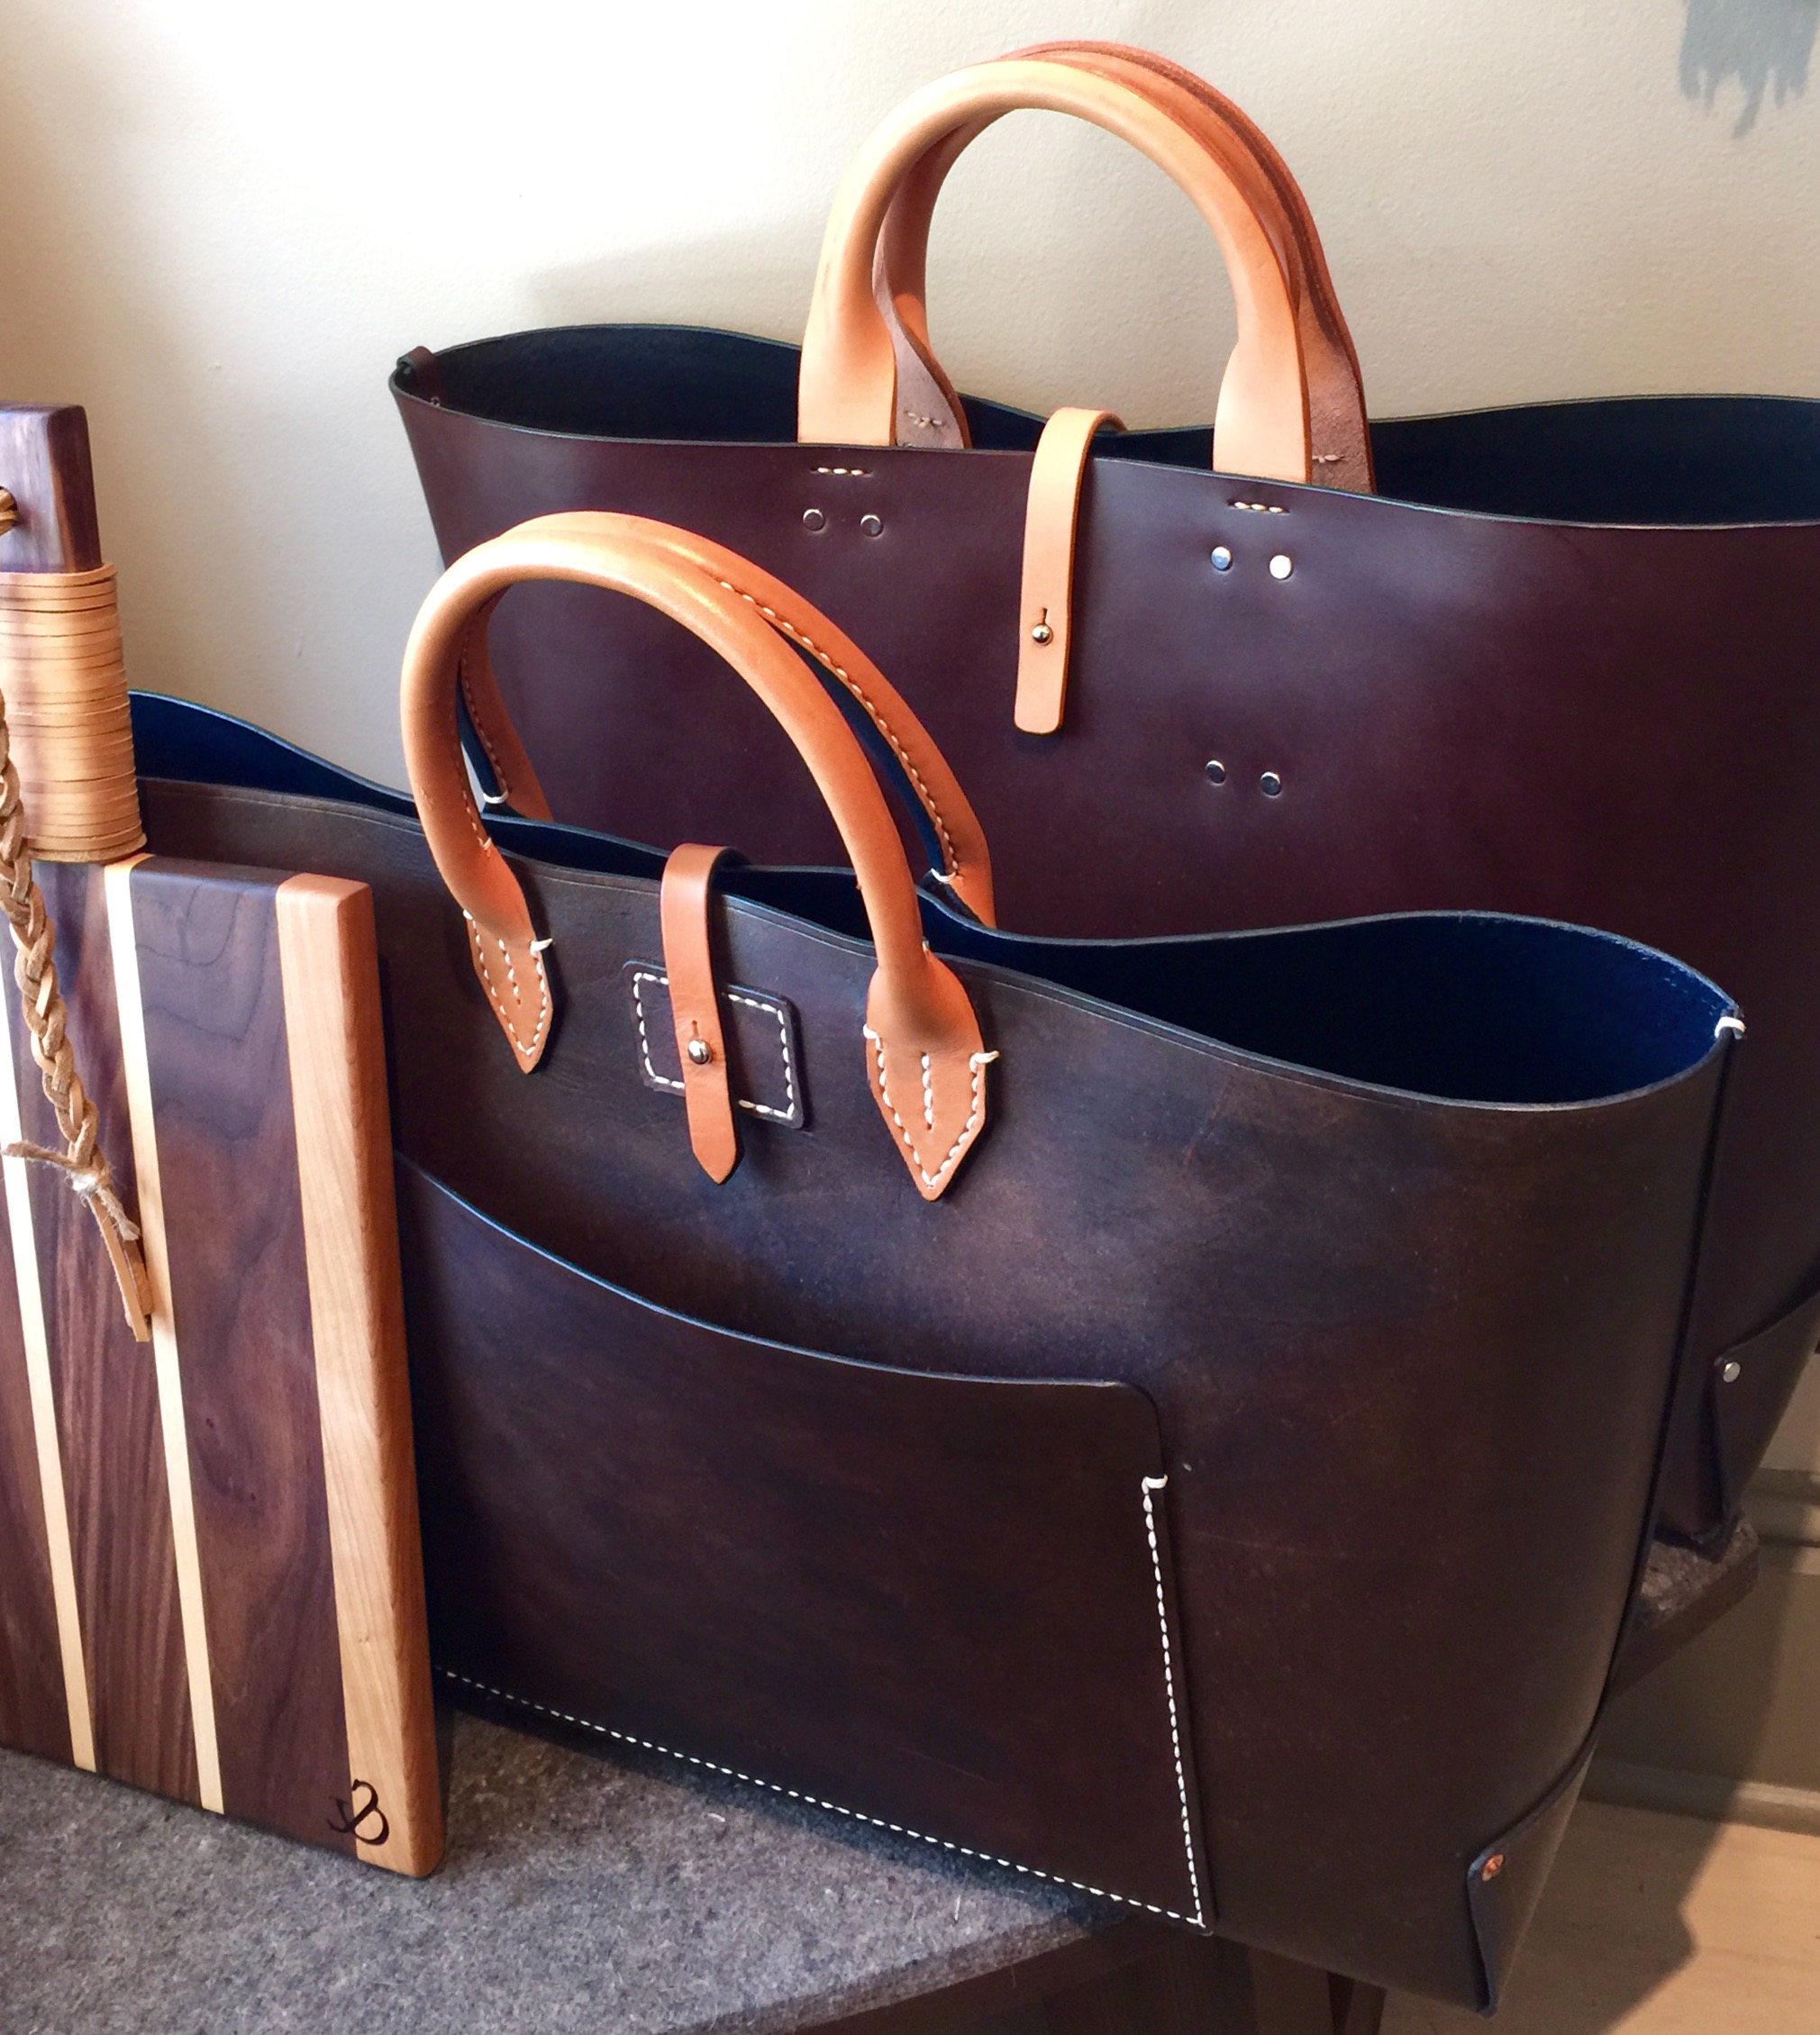 064bc75c5622 The Perfect Holiday Gifts  KMR Presents Leitz Leather Luxury Goods